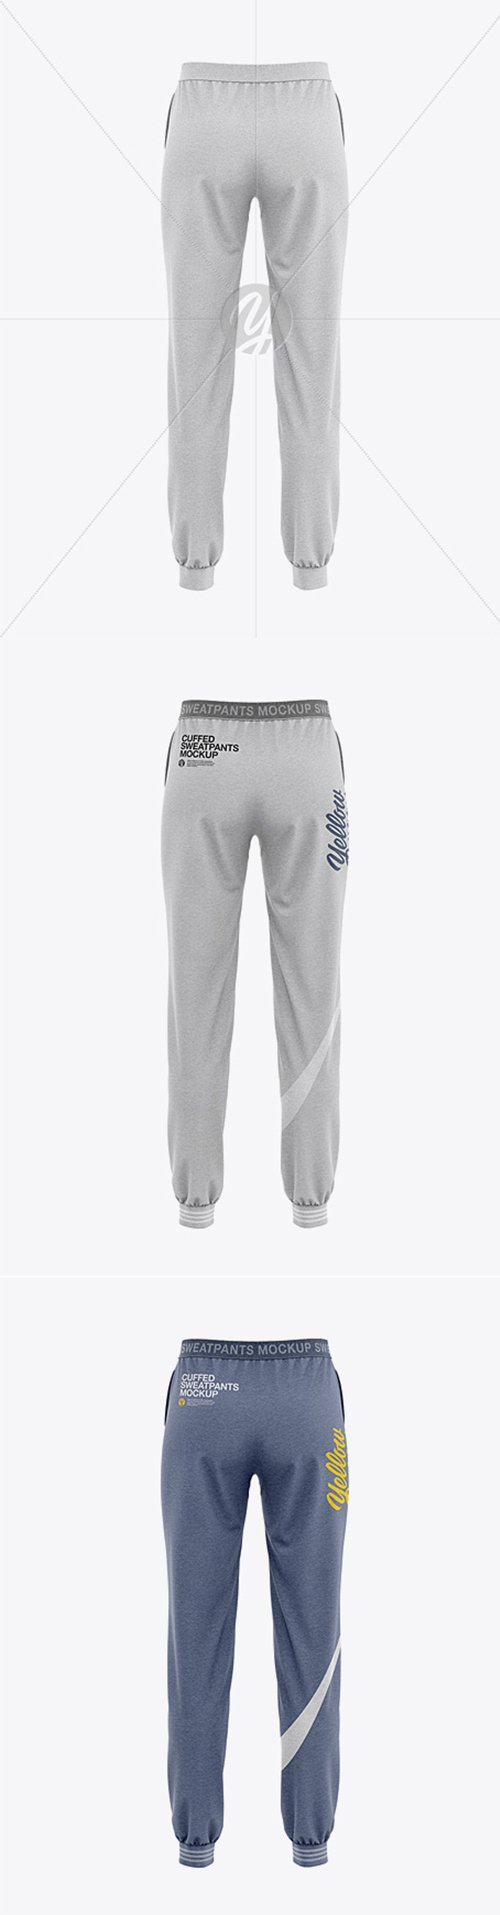 Womens Heather Cuffed Joggers - Back View 35544 TIF